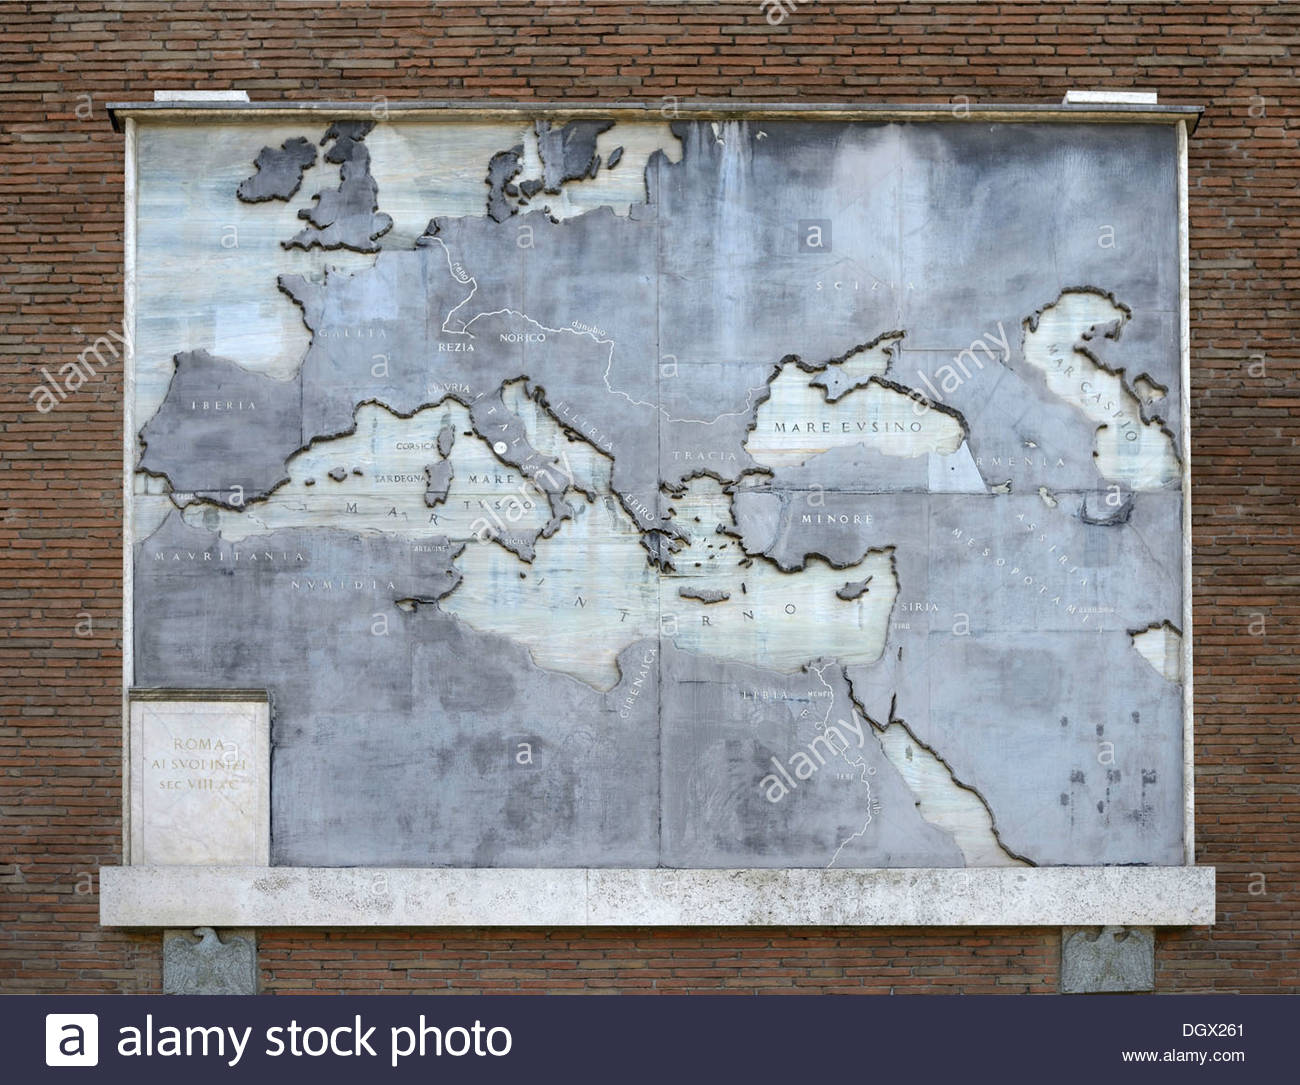 mural the roman empire in the early 8th century bc created by mural the roman empire in the early 8th century bc created by mussolini rome italy